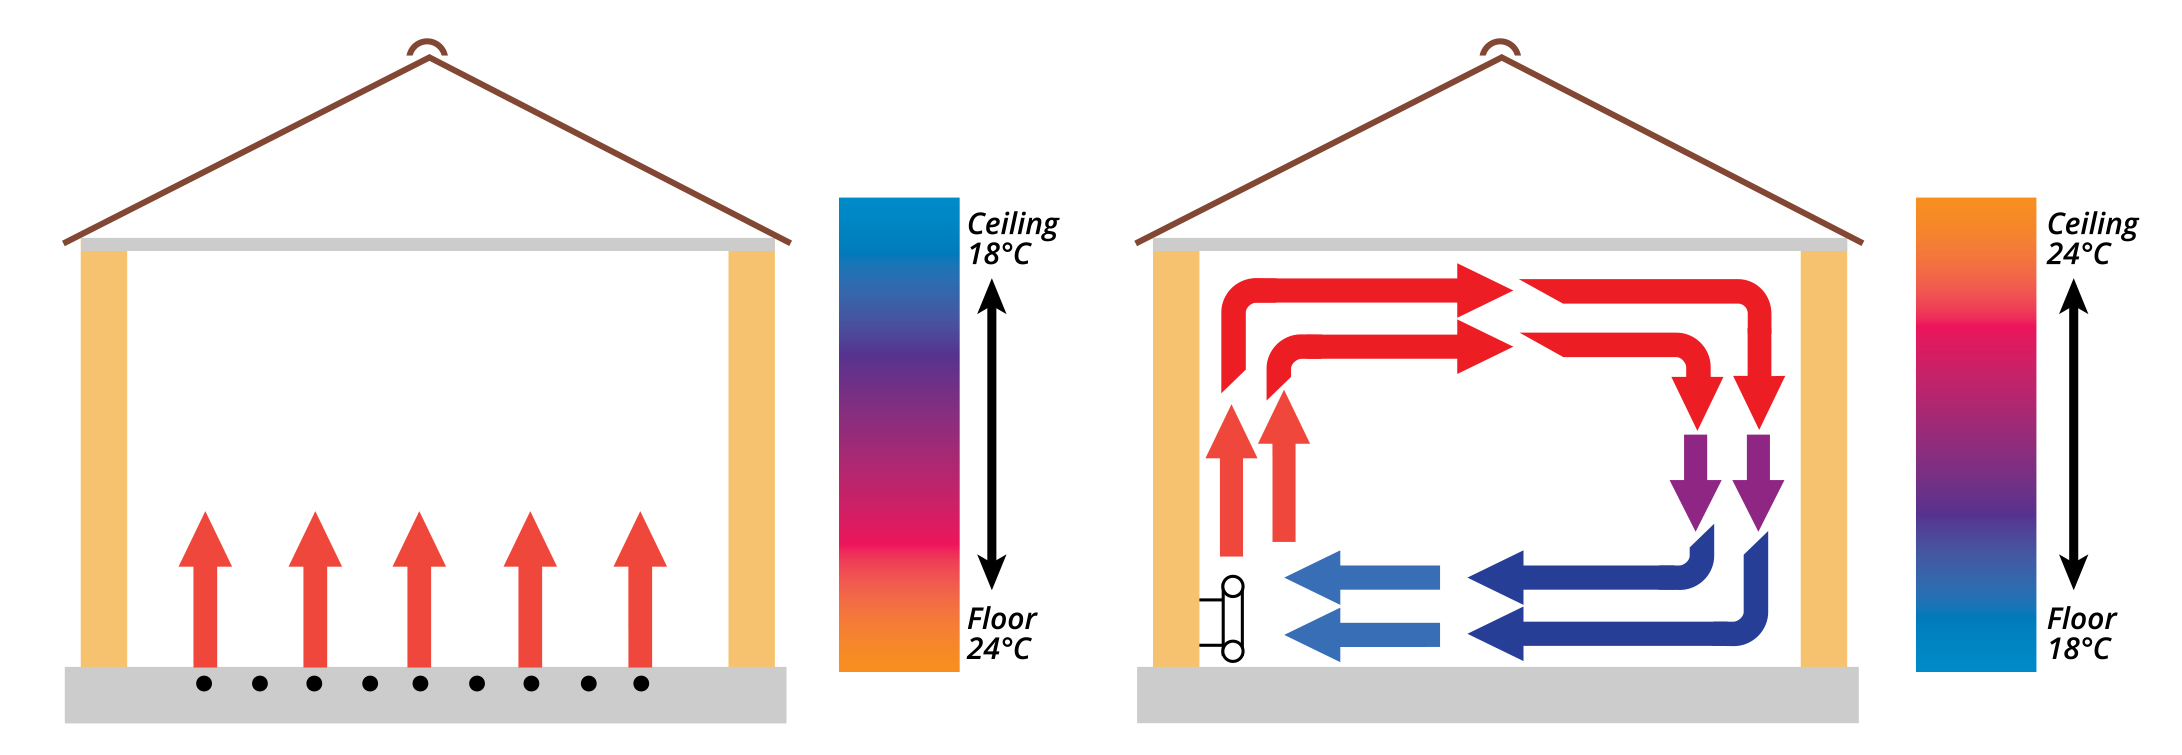 Under Floor Heating Or Radiator Systems Or Both Ideas